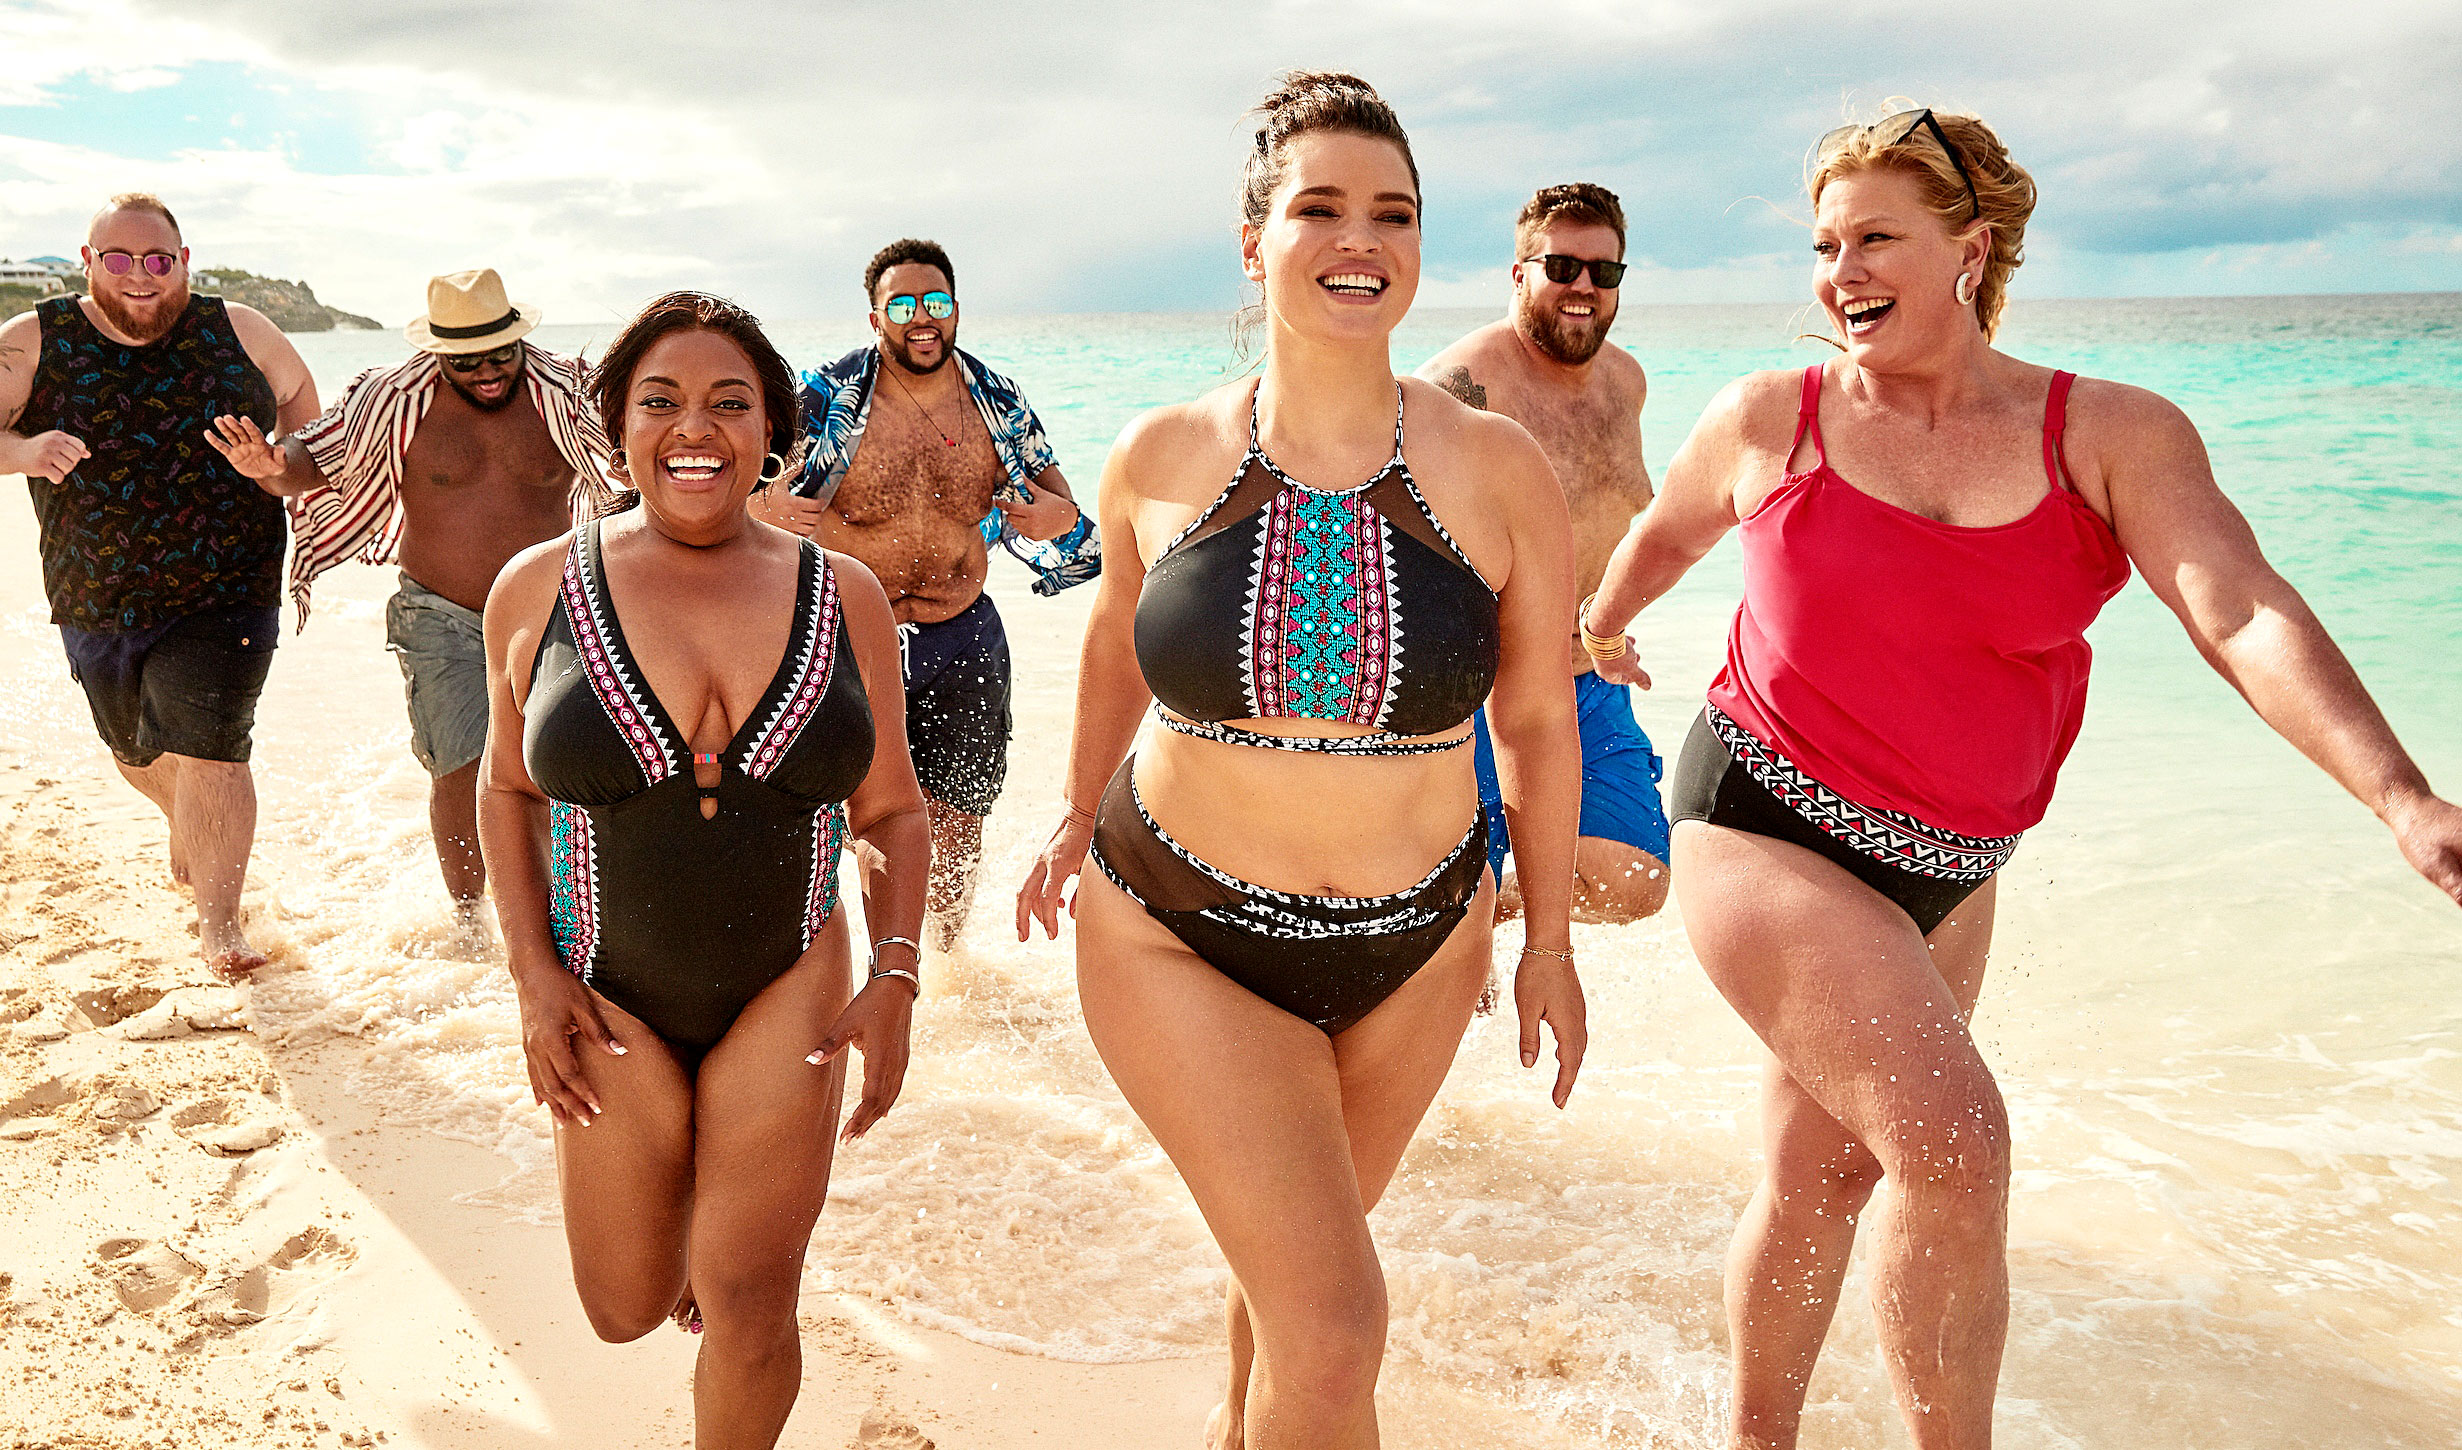 Ashley Graham Sherri Shepherd Lead Body-Positive Swim Campaign - The collection from Swimwear For All includes women's sizes 4 to 40. KingSize's summer collection includes sizes BIG XL-9X and TALL L-6XL.